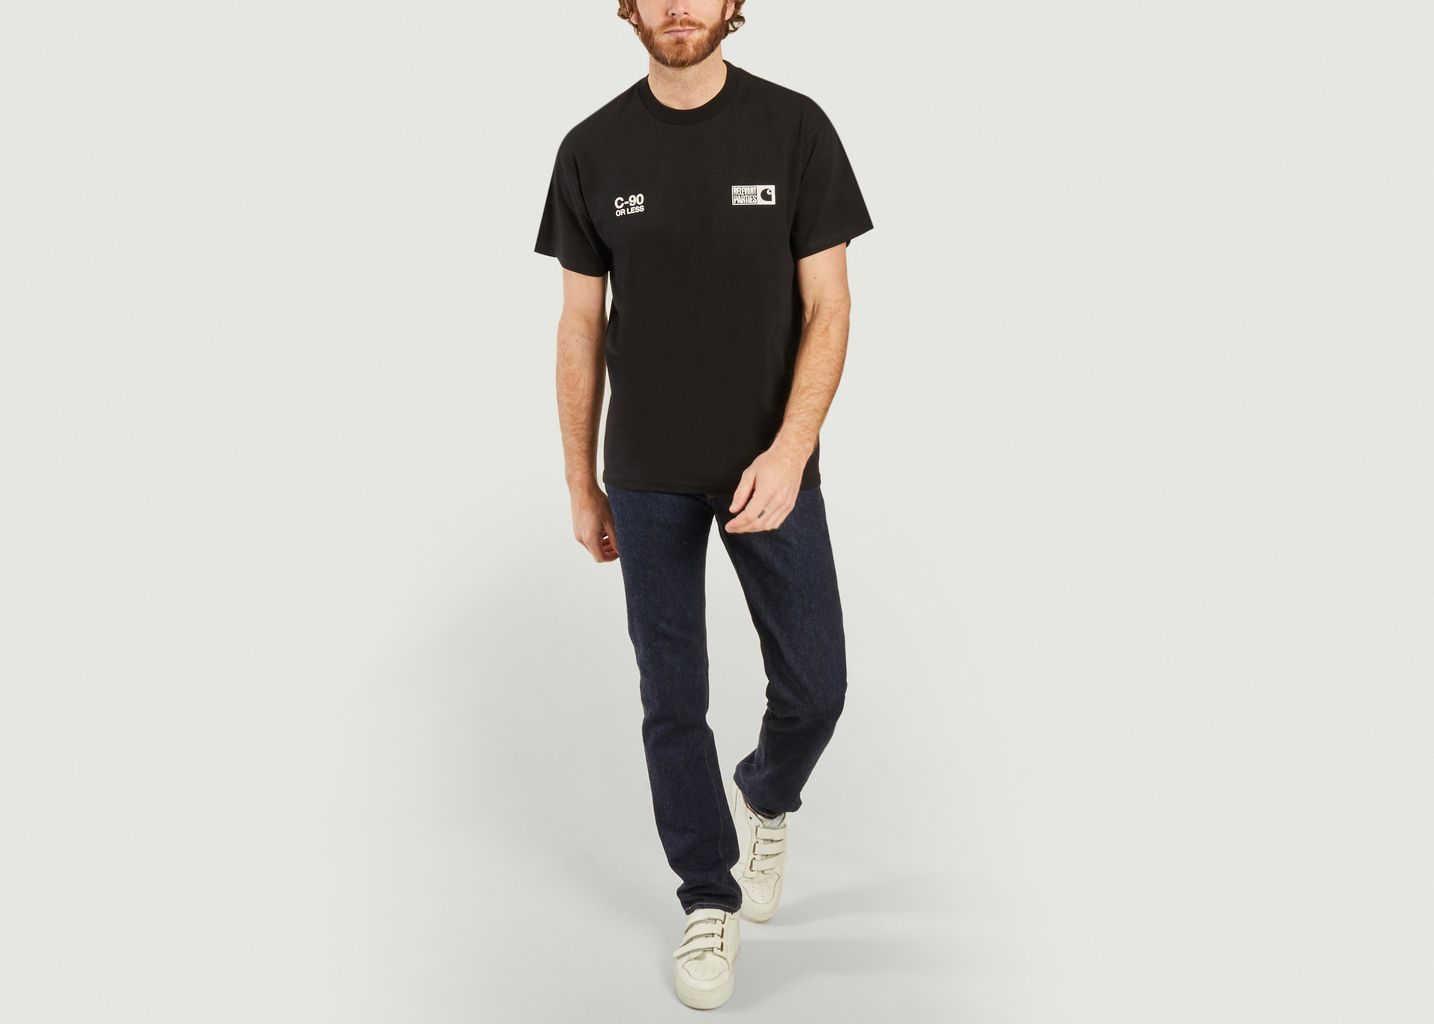 T-shirt Relevant Parties - Carhartt WIP